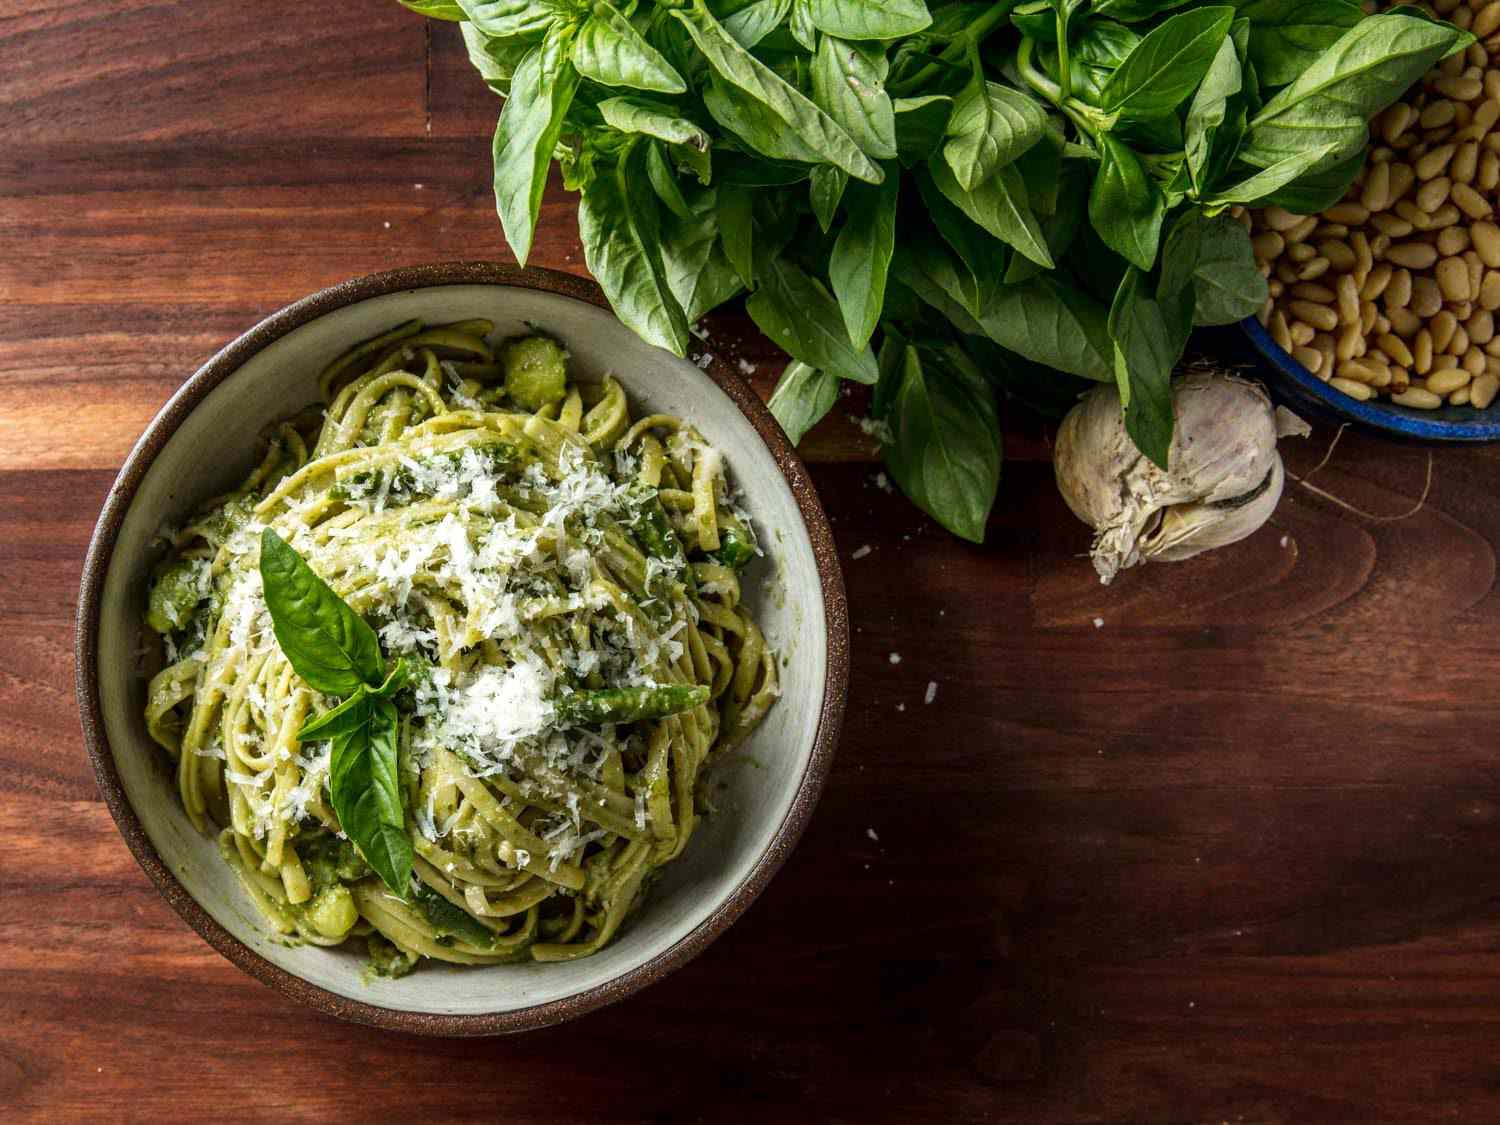 Pesto on linguine in a bowl on rustic tabletop, with fresh basil, garlic, and pine nuts on the side.